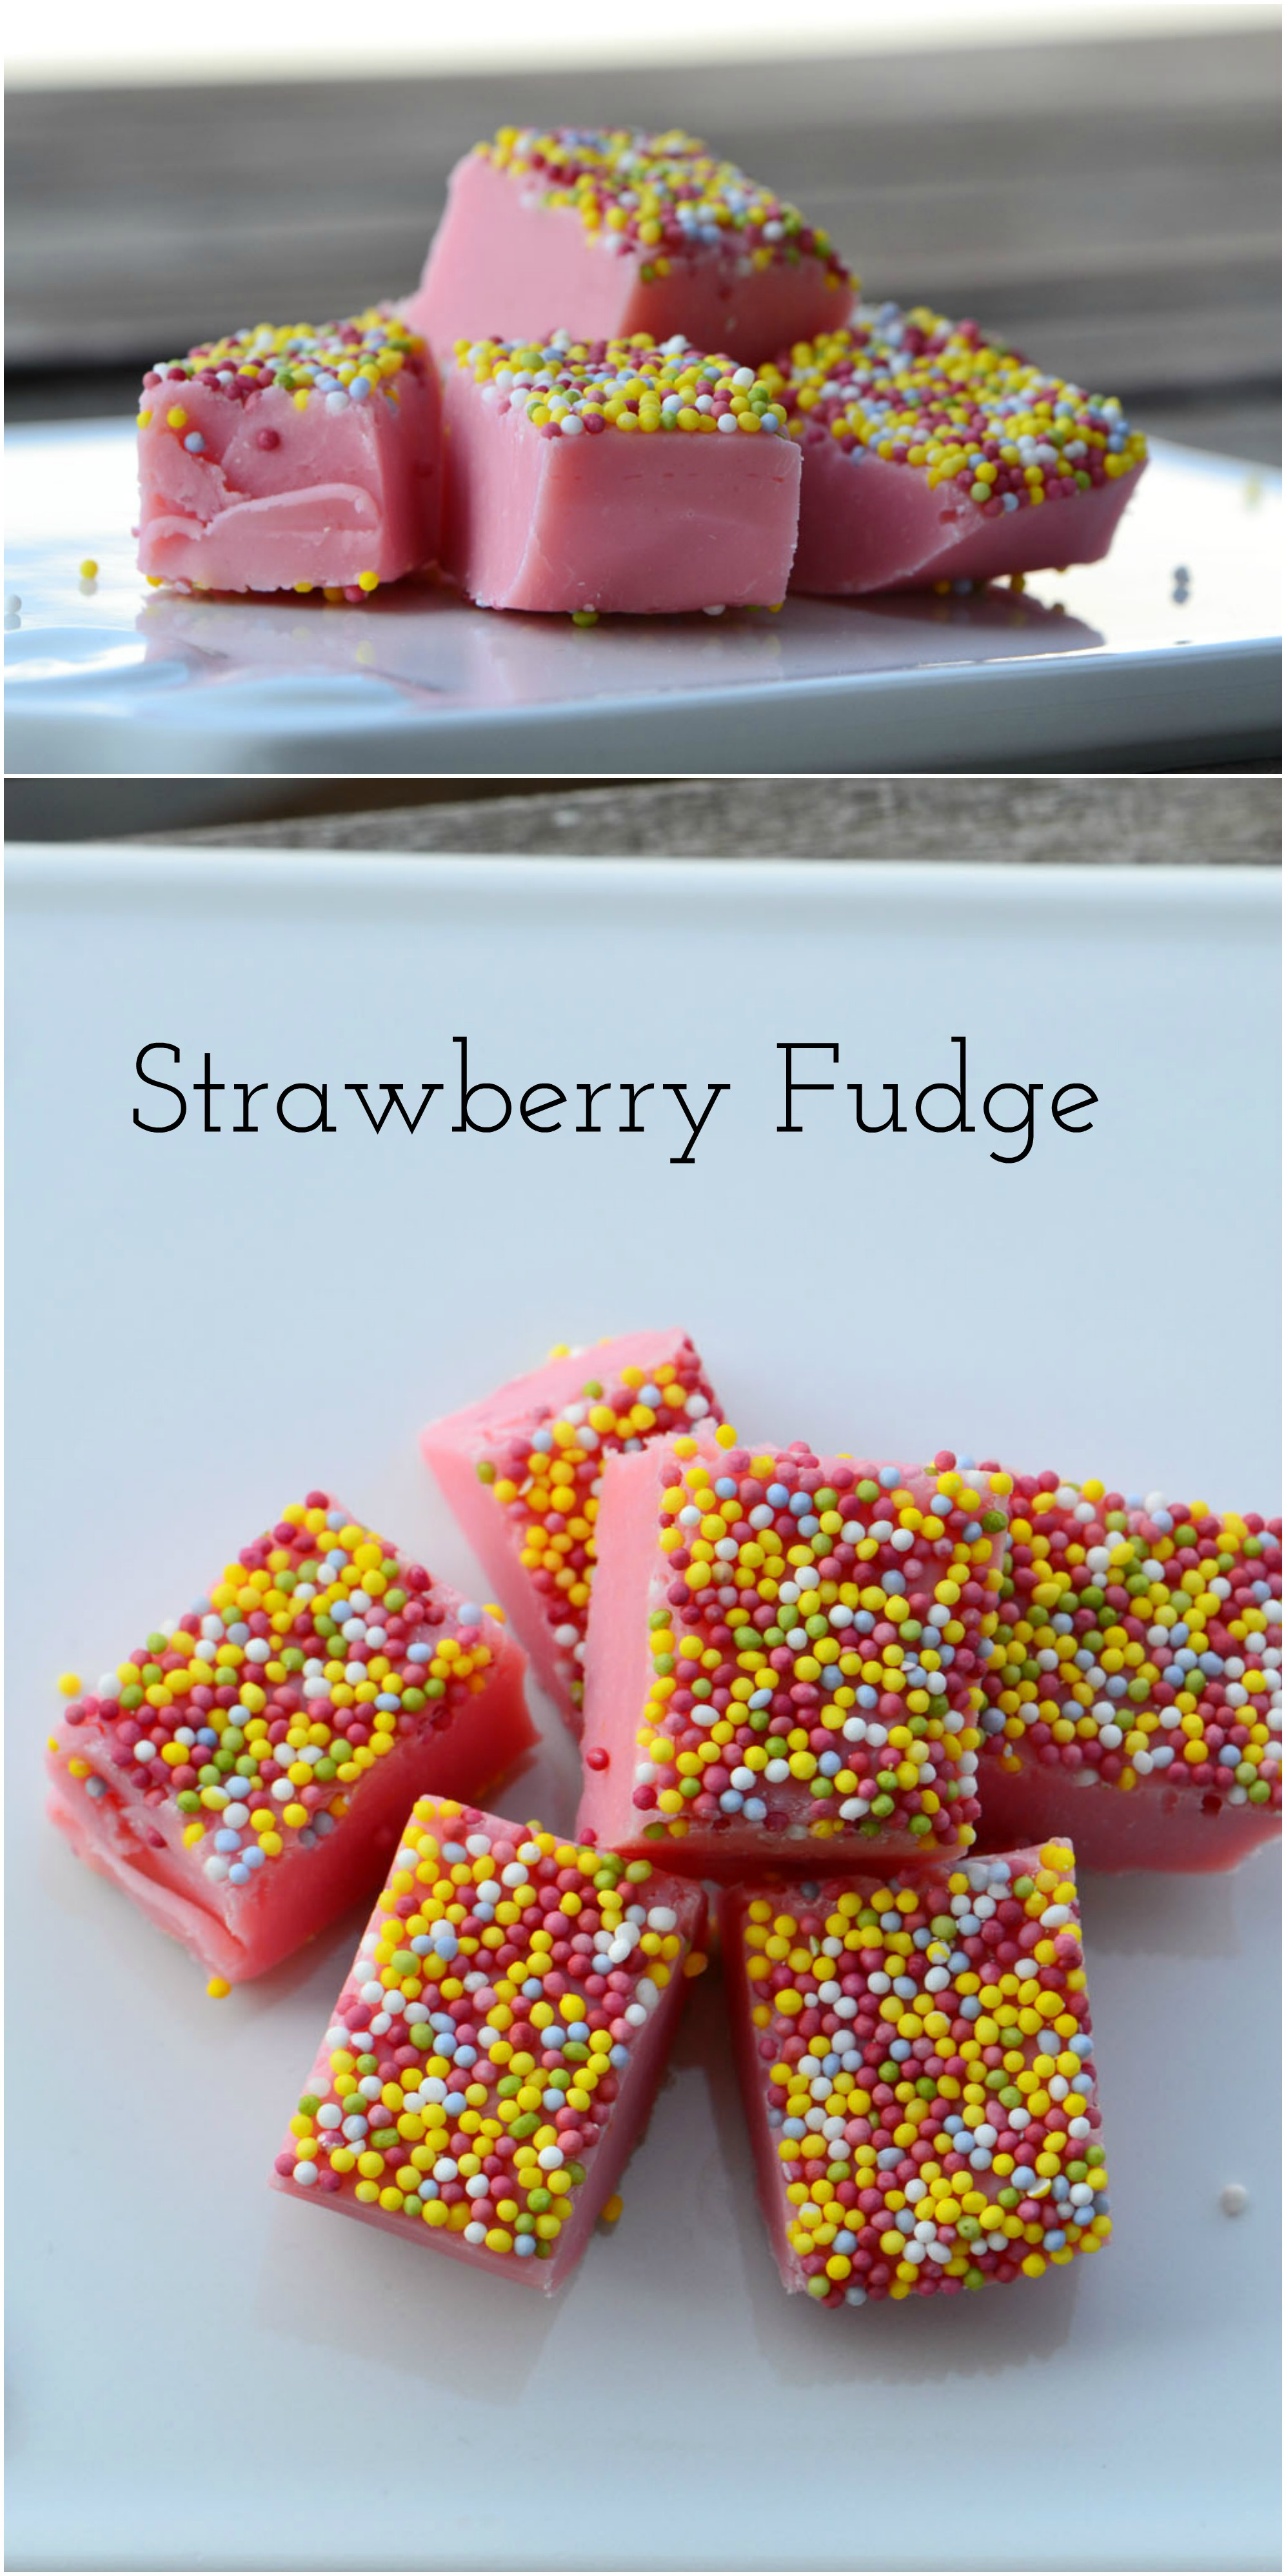 White Chocolate Fudge with strawberry flavor and colorful sprinkles